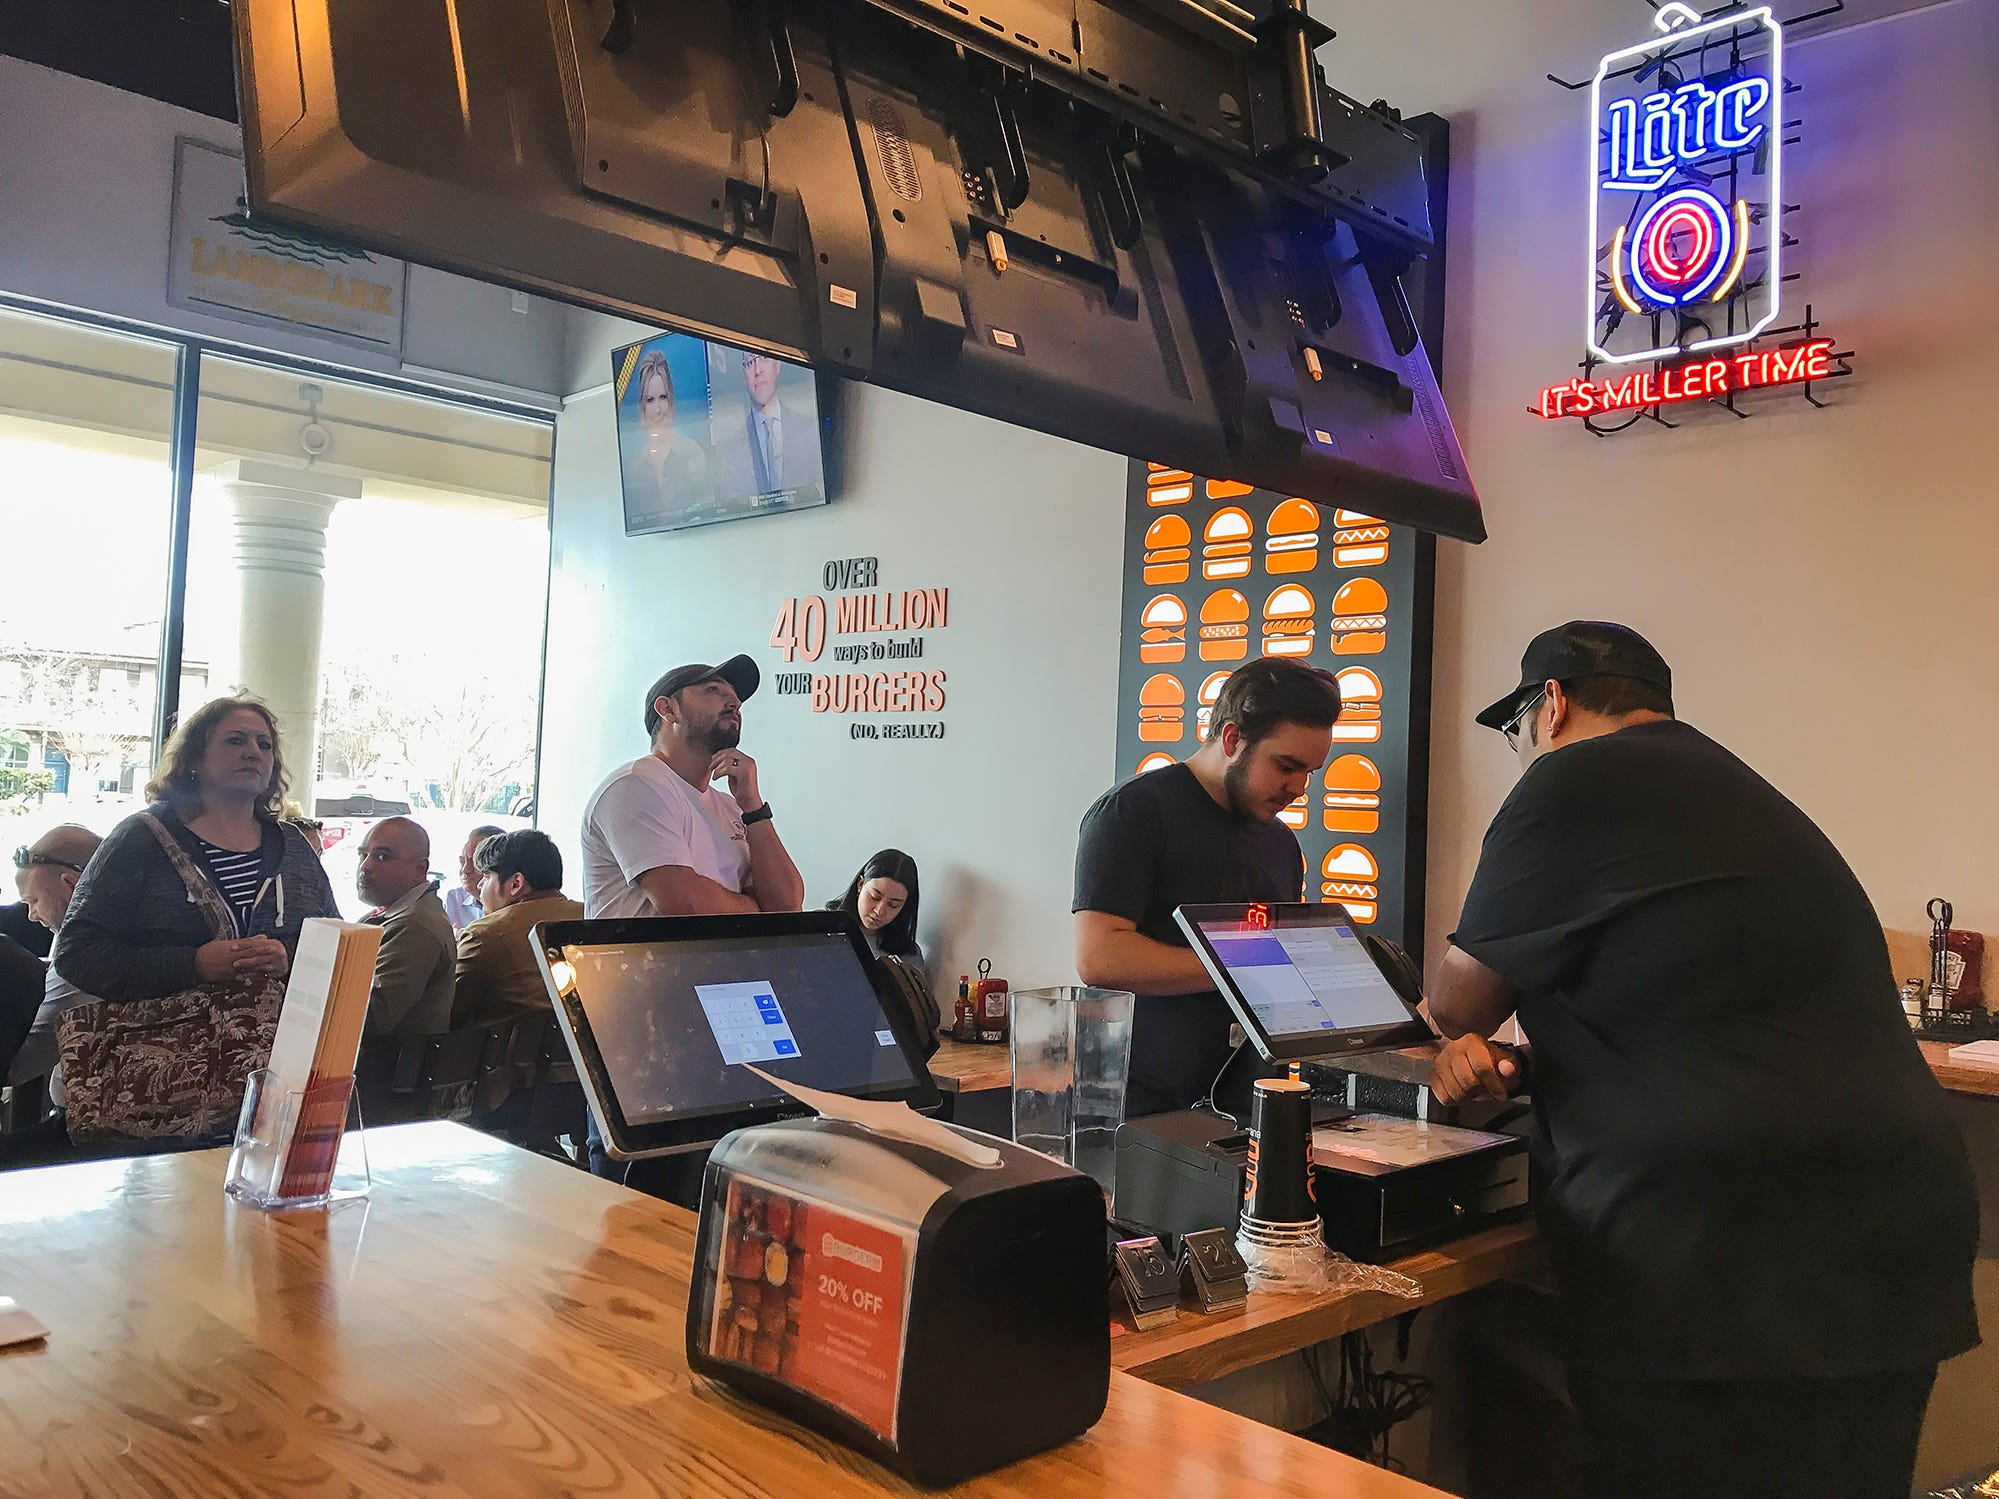 Burgerim of Corpus Christi opened at 6418 S. Staples St. in January 2019. The restaurant serves 3-ounce burgers, fries, onion rings, salads and wings.